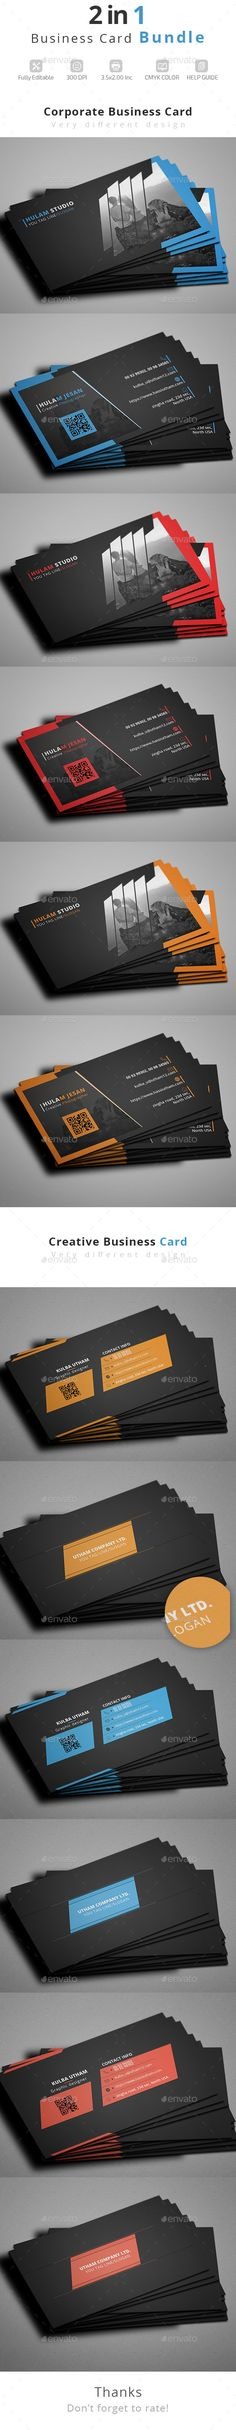 Business Card Bundle Template PSD #design Download: http://graphicriver.net/item/business-card-bundle/14289368?ref=ksioks